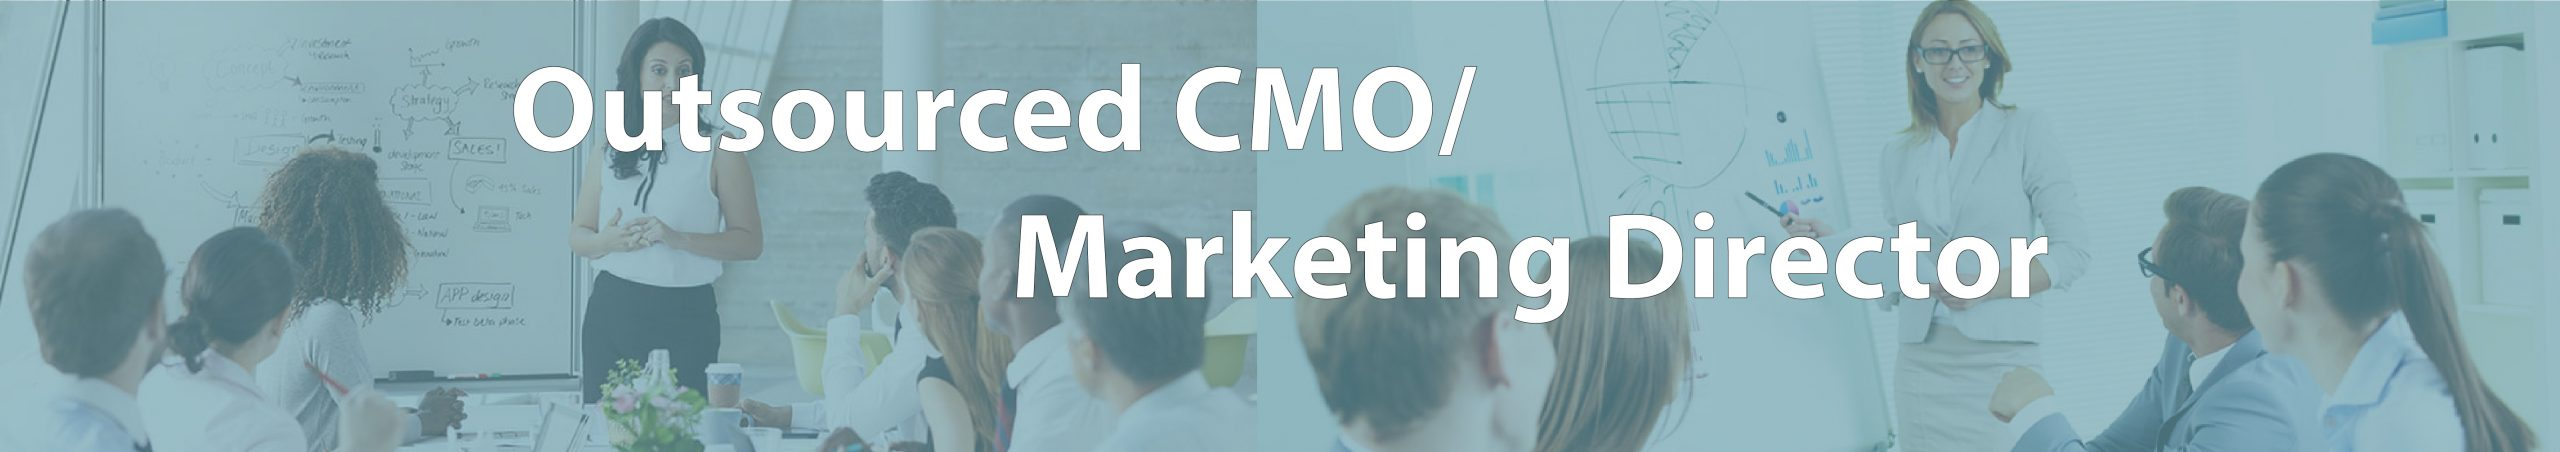 marketing consulting firms Outsourced Marketing Cmo head 01 scaled